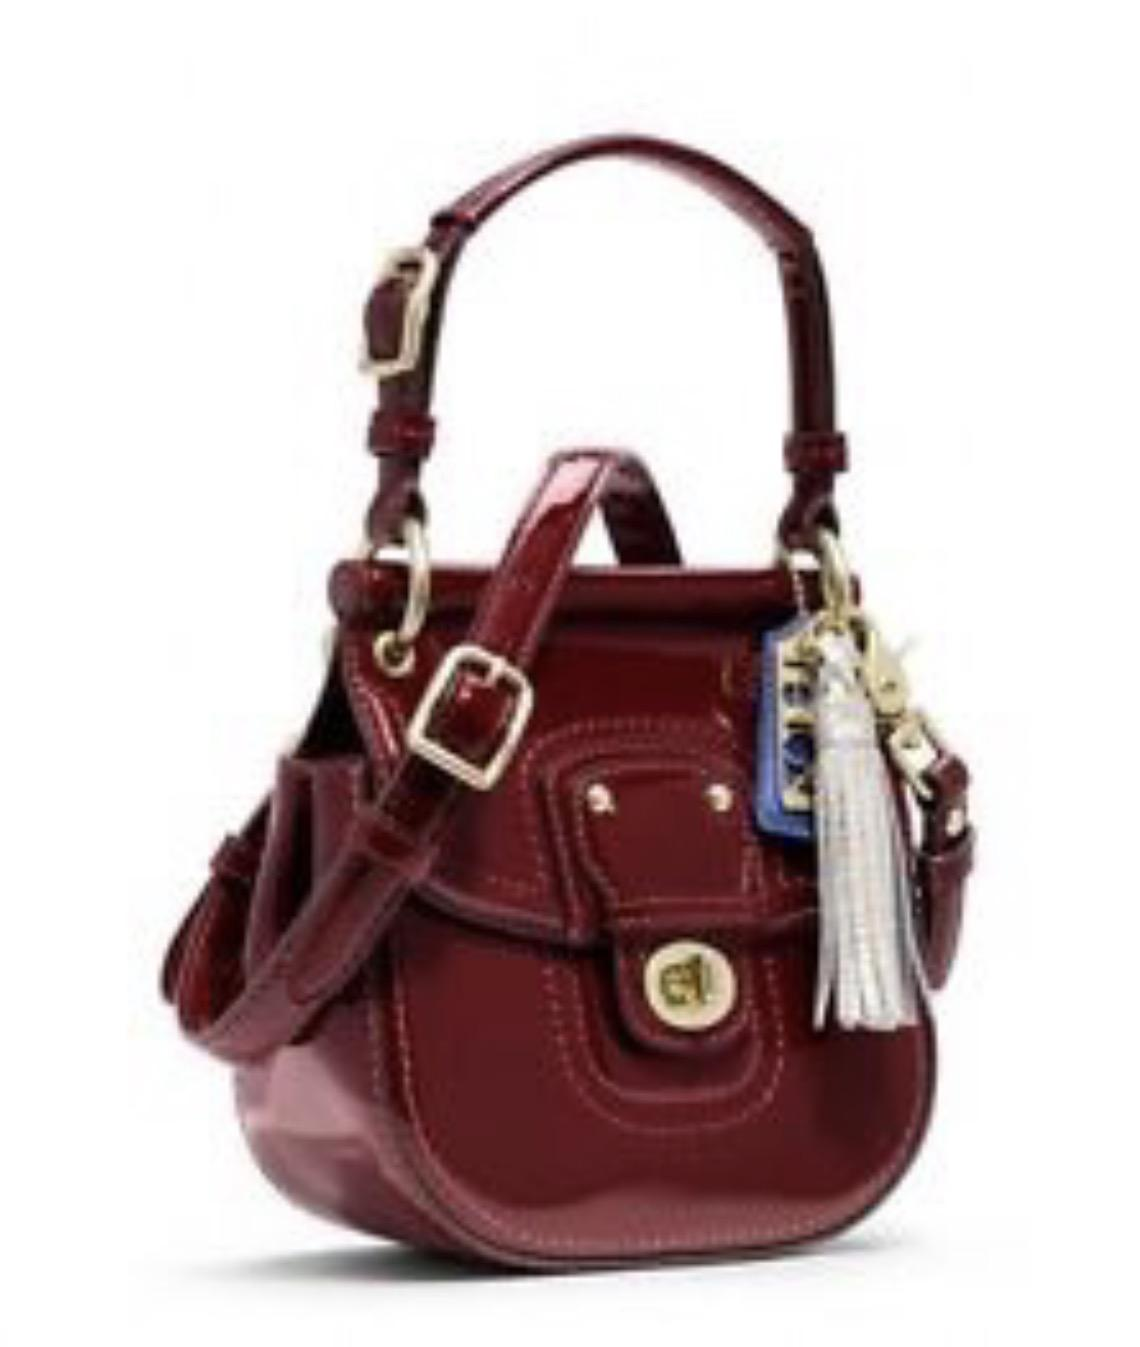 red coach willis bag best loved 288cf 8c205 mslmoneycontrol com rh mslmoneycontrol com